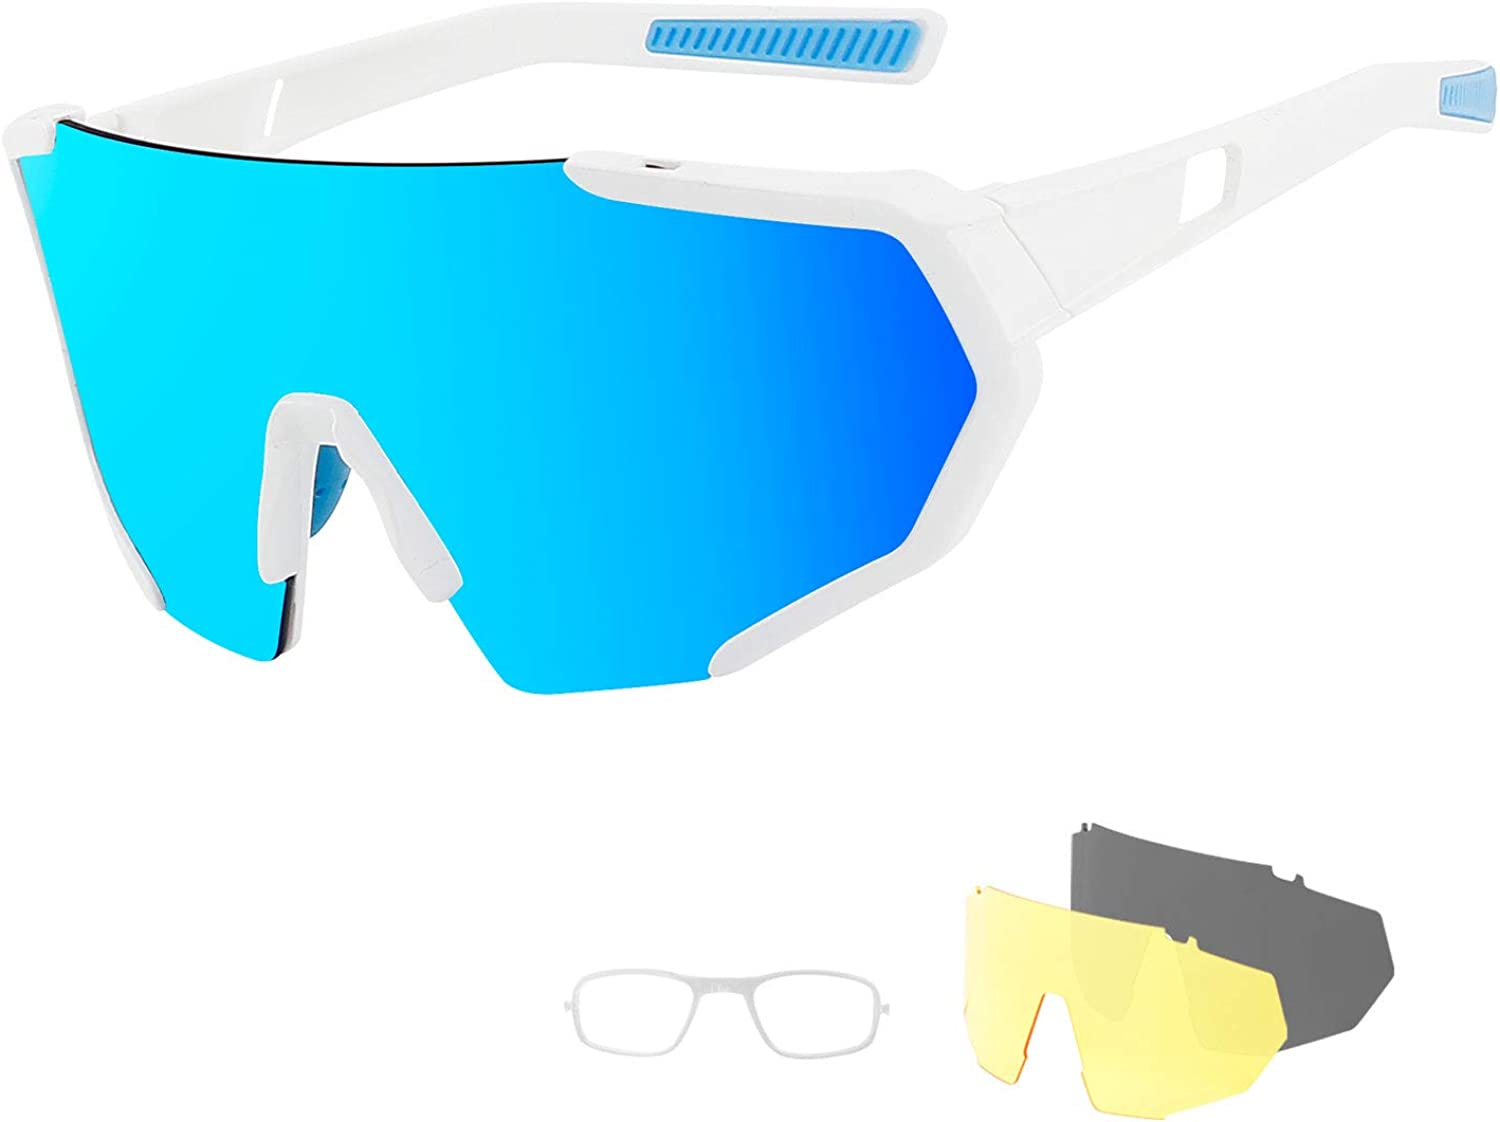 Cycling Sports Sunglasses with 3 Interchangeable Lenses,Polarized Bike Glasses for Men Women